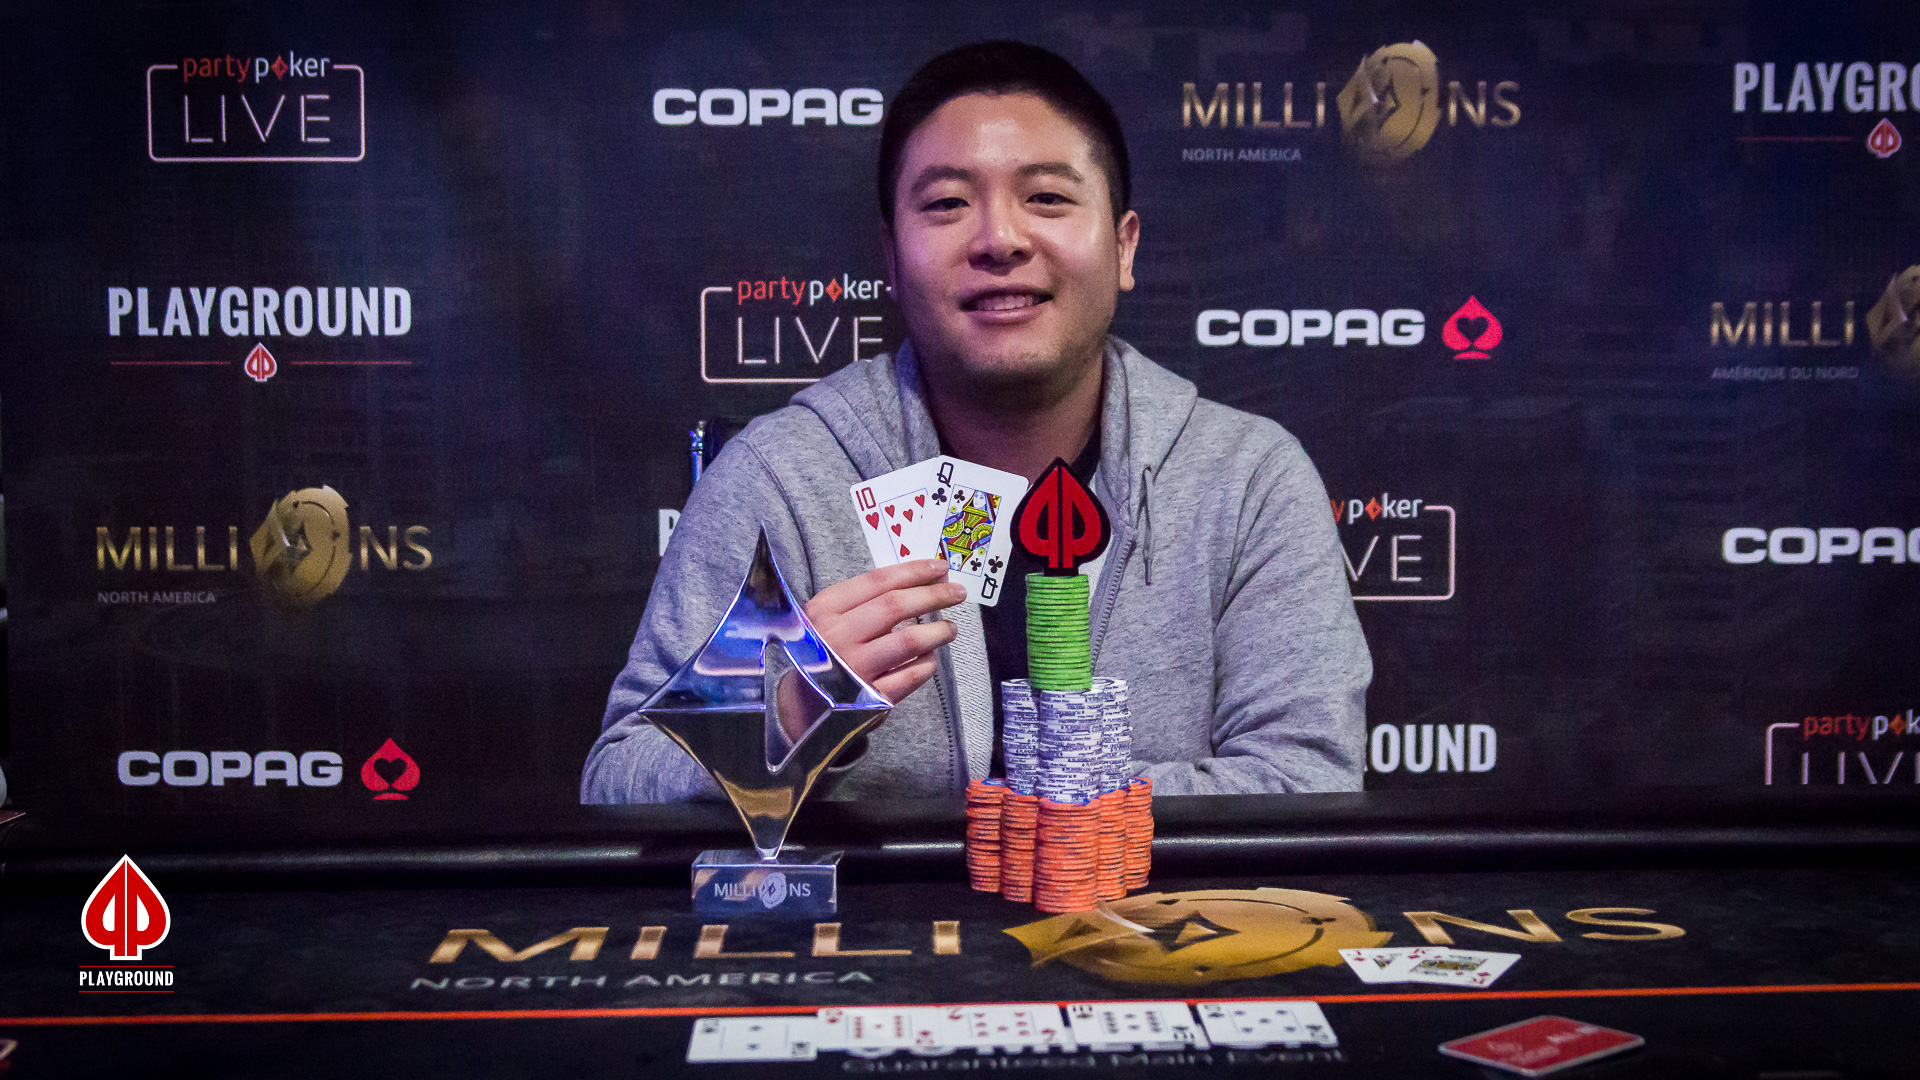 Brian Yoon remporte le 10 000$ + 300$ High Roller